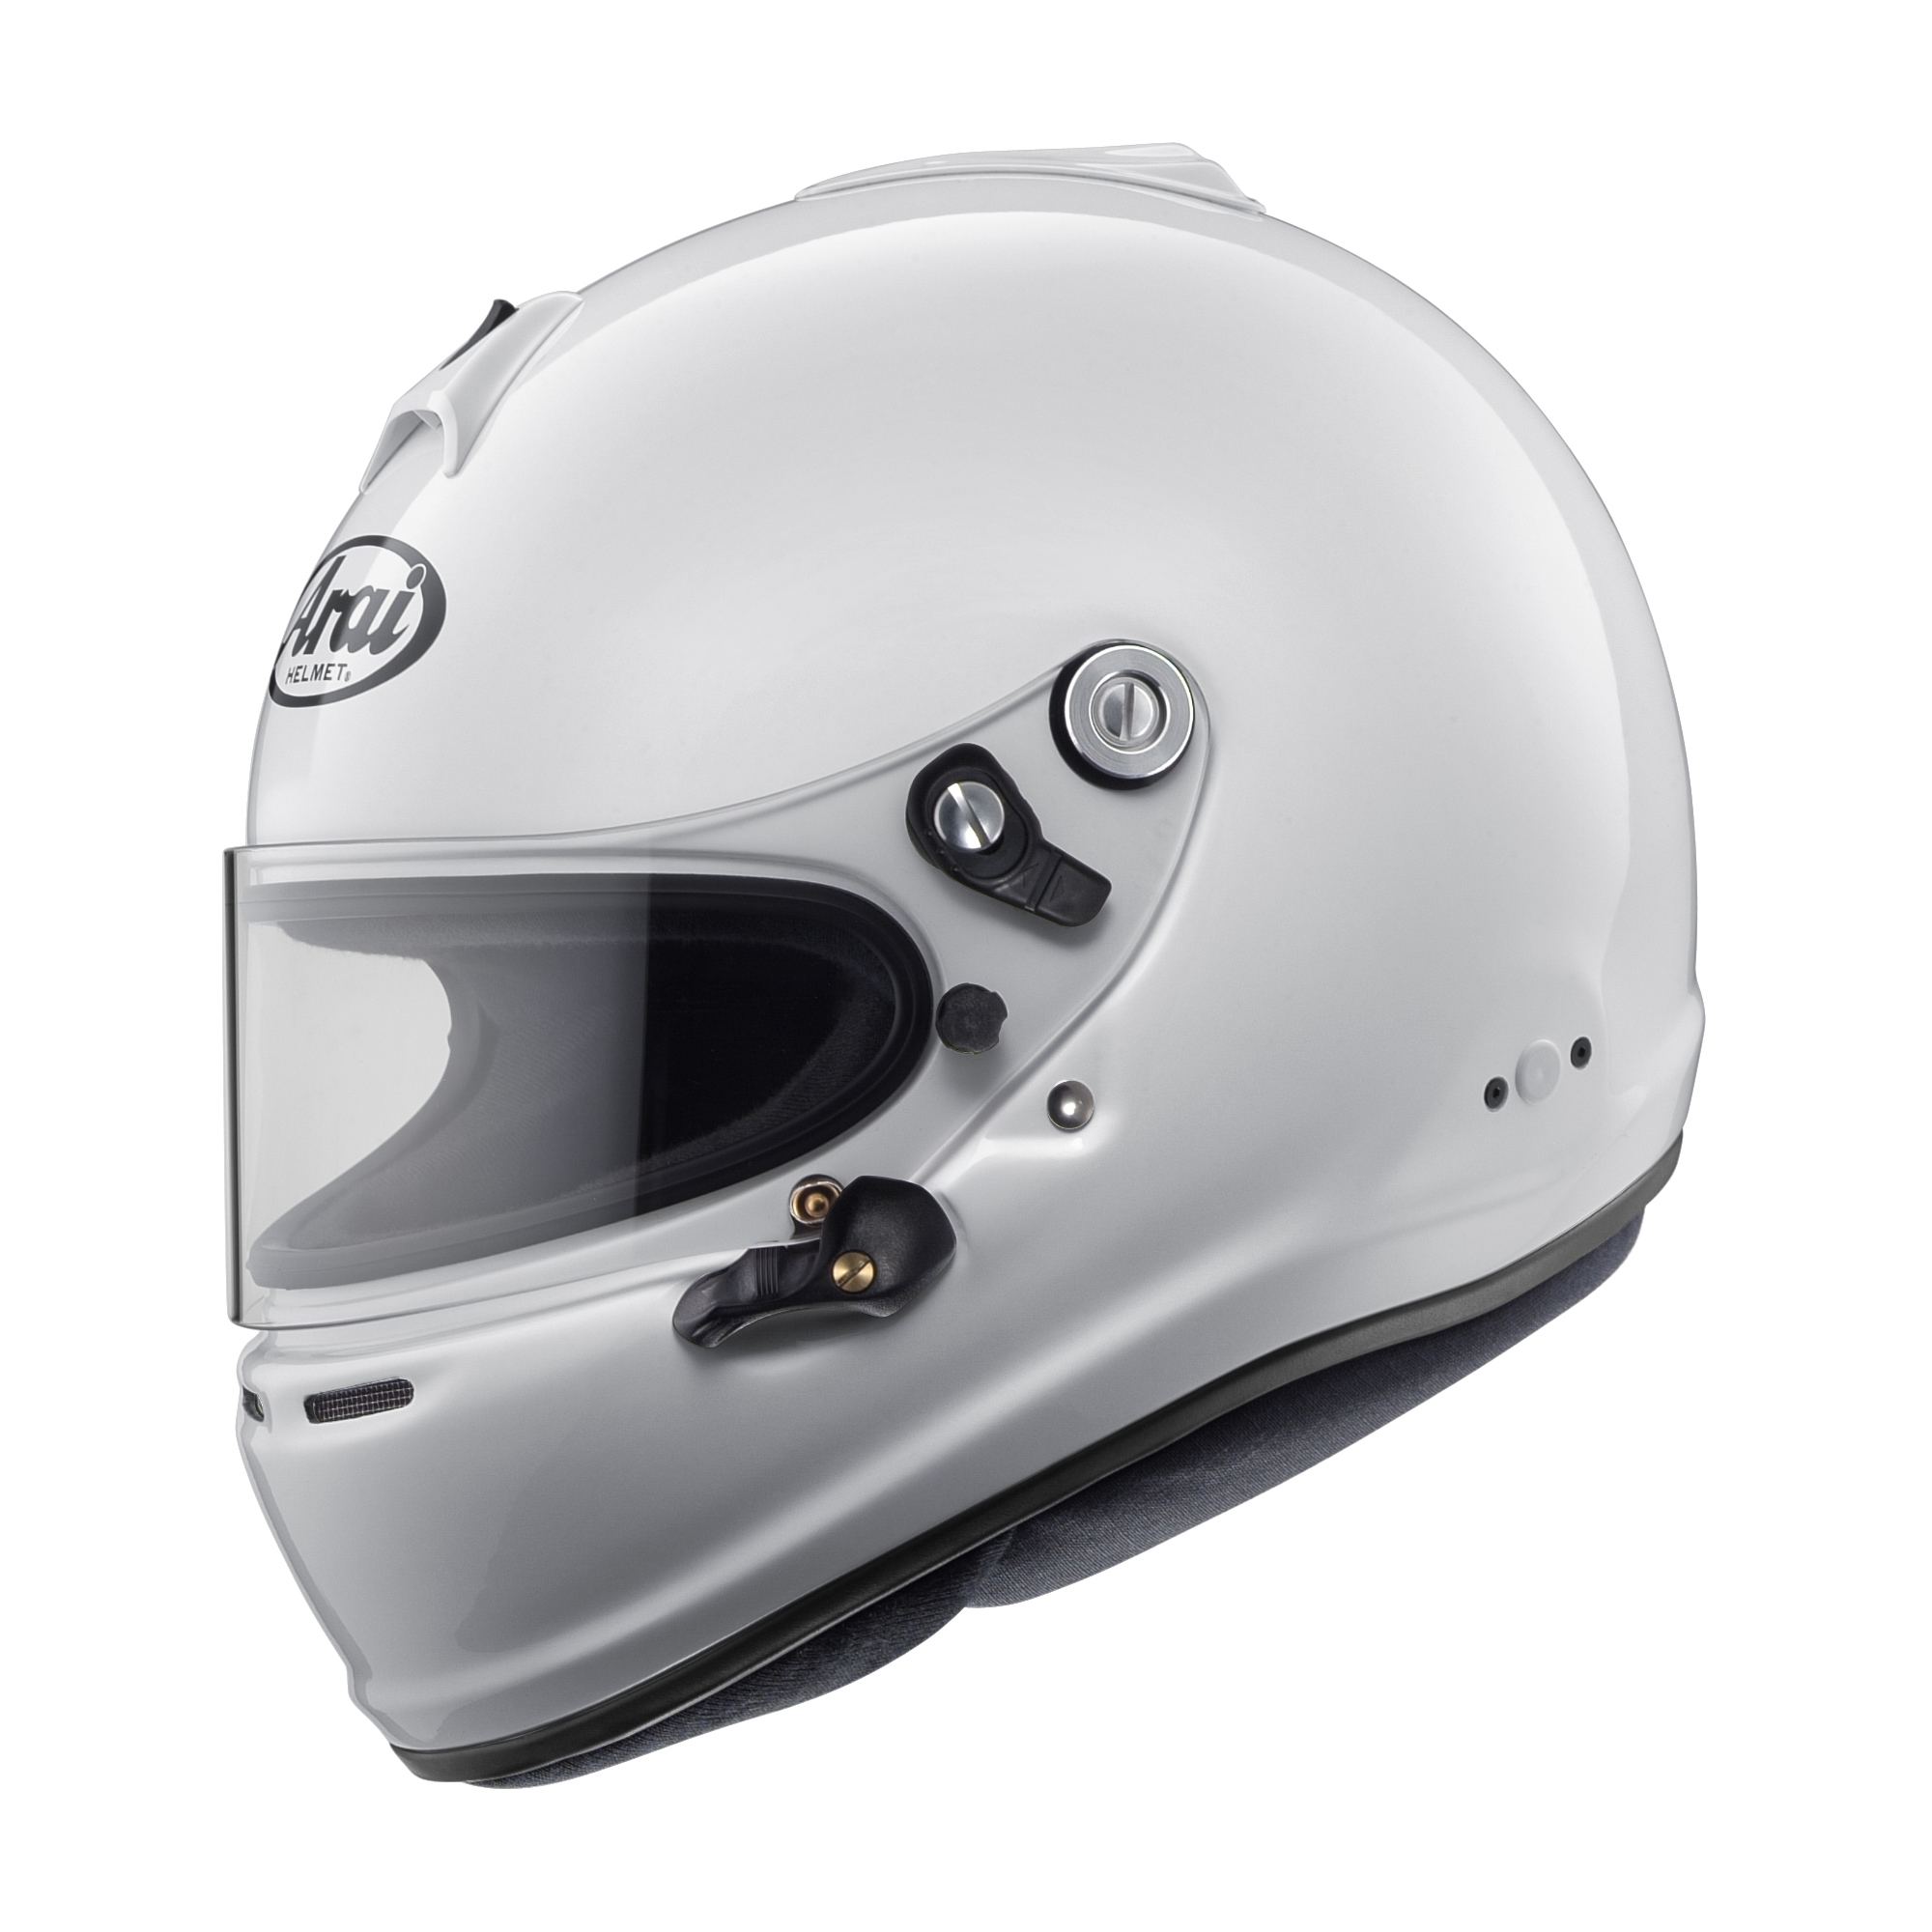 Arai Helmet 685311143464 Helmet, GP-6S, Snell SA2015, FIA Approved, Head and Neck Support Ready, White, Large, Each